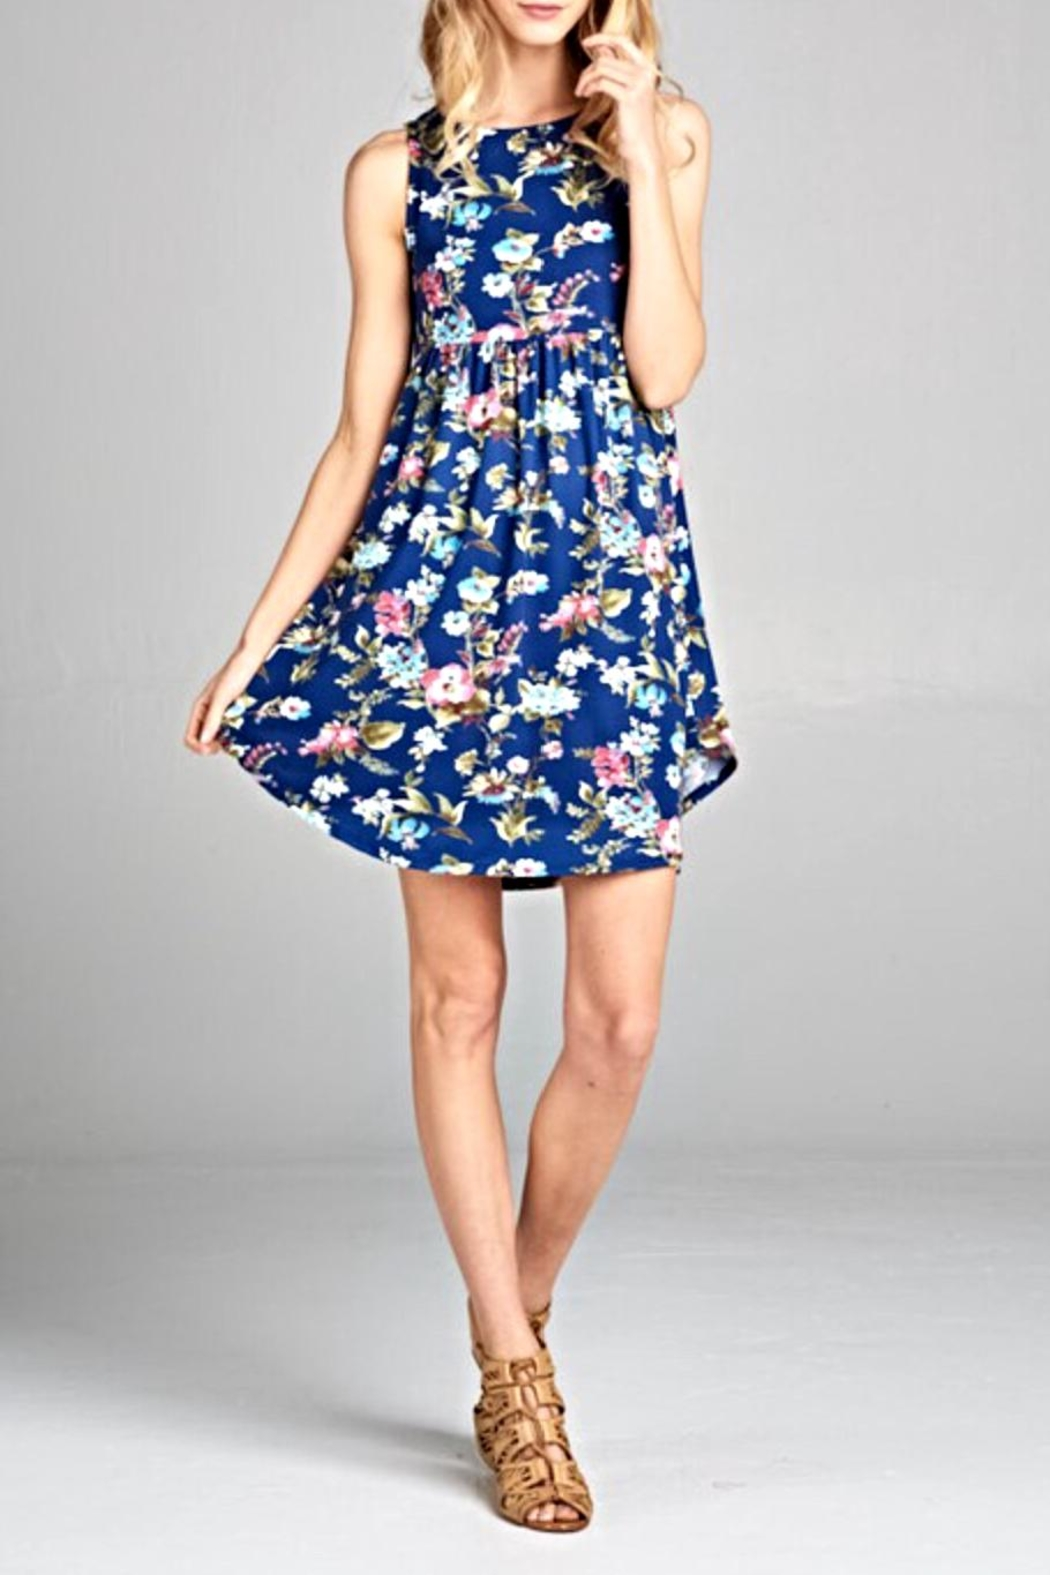 EMERALD COLLECTION Sleeveless Floral Dress - Main Image